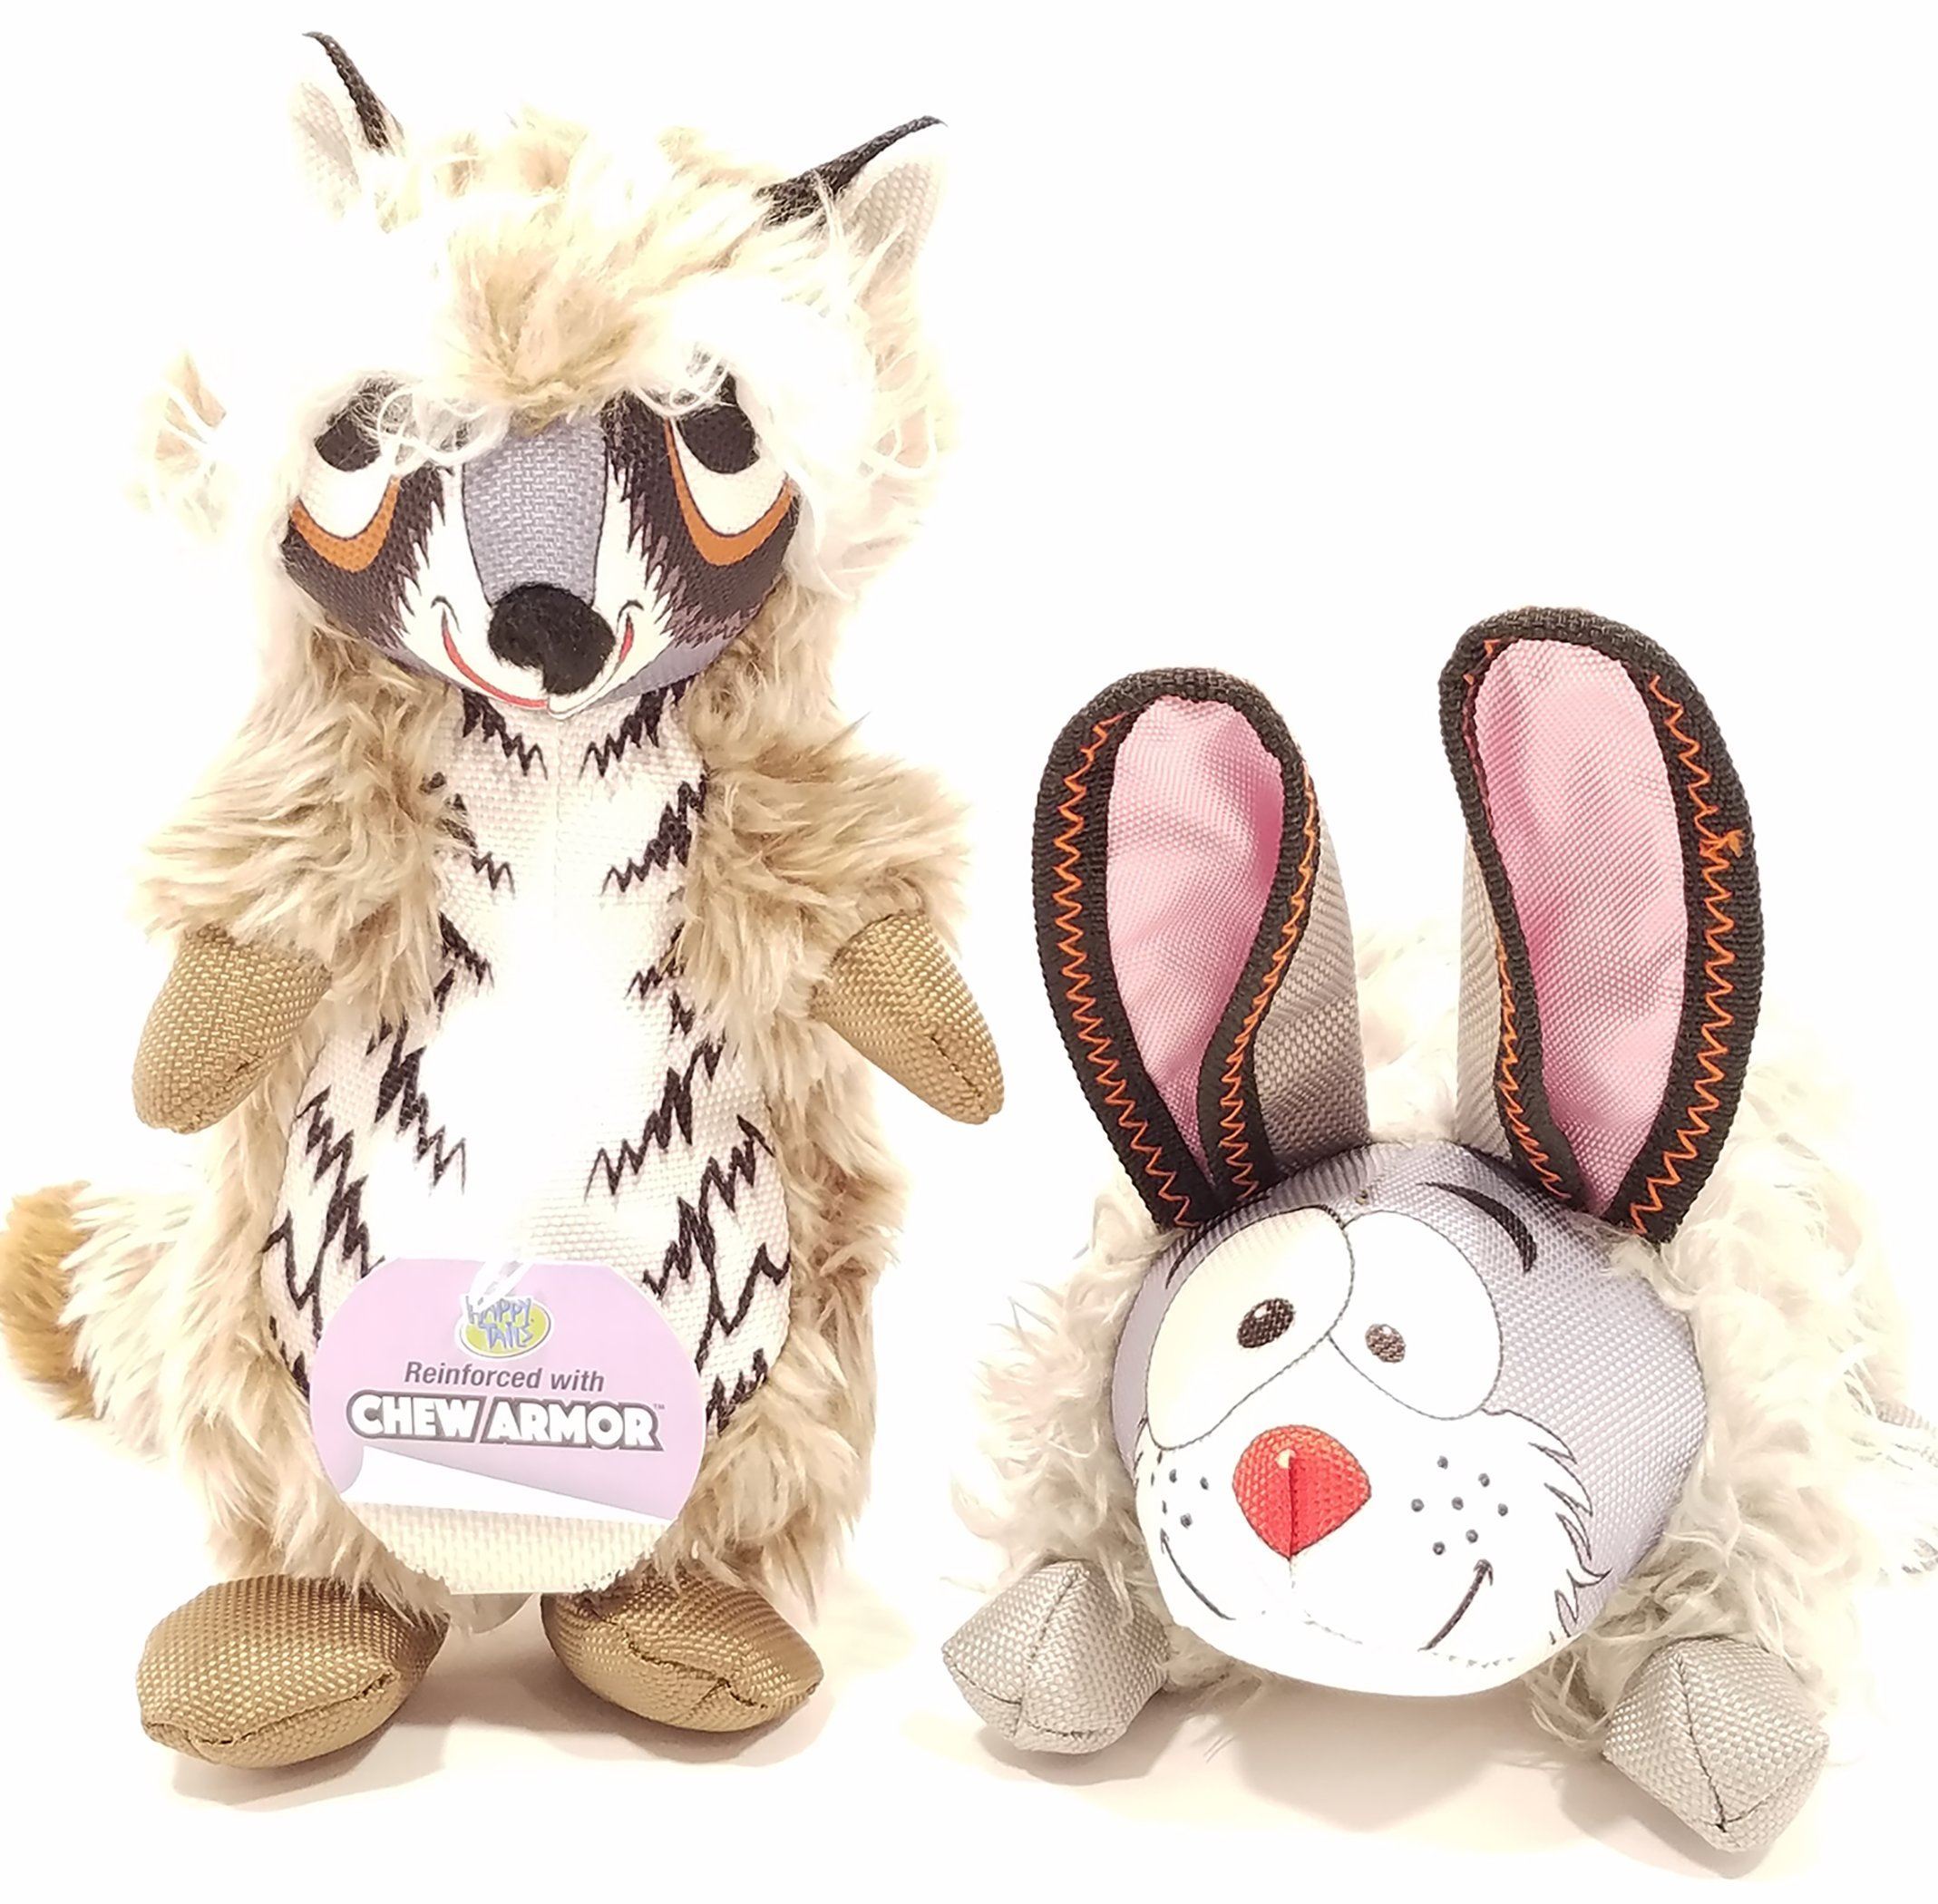 Ty's Pet Corner 2 pack Racoon and Skunk large Plush pet toys with Chew Armor and squeaker